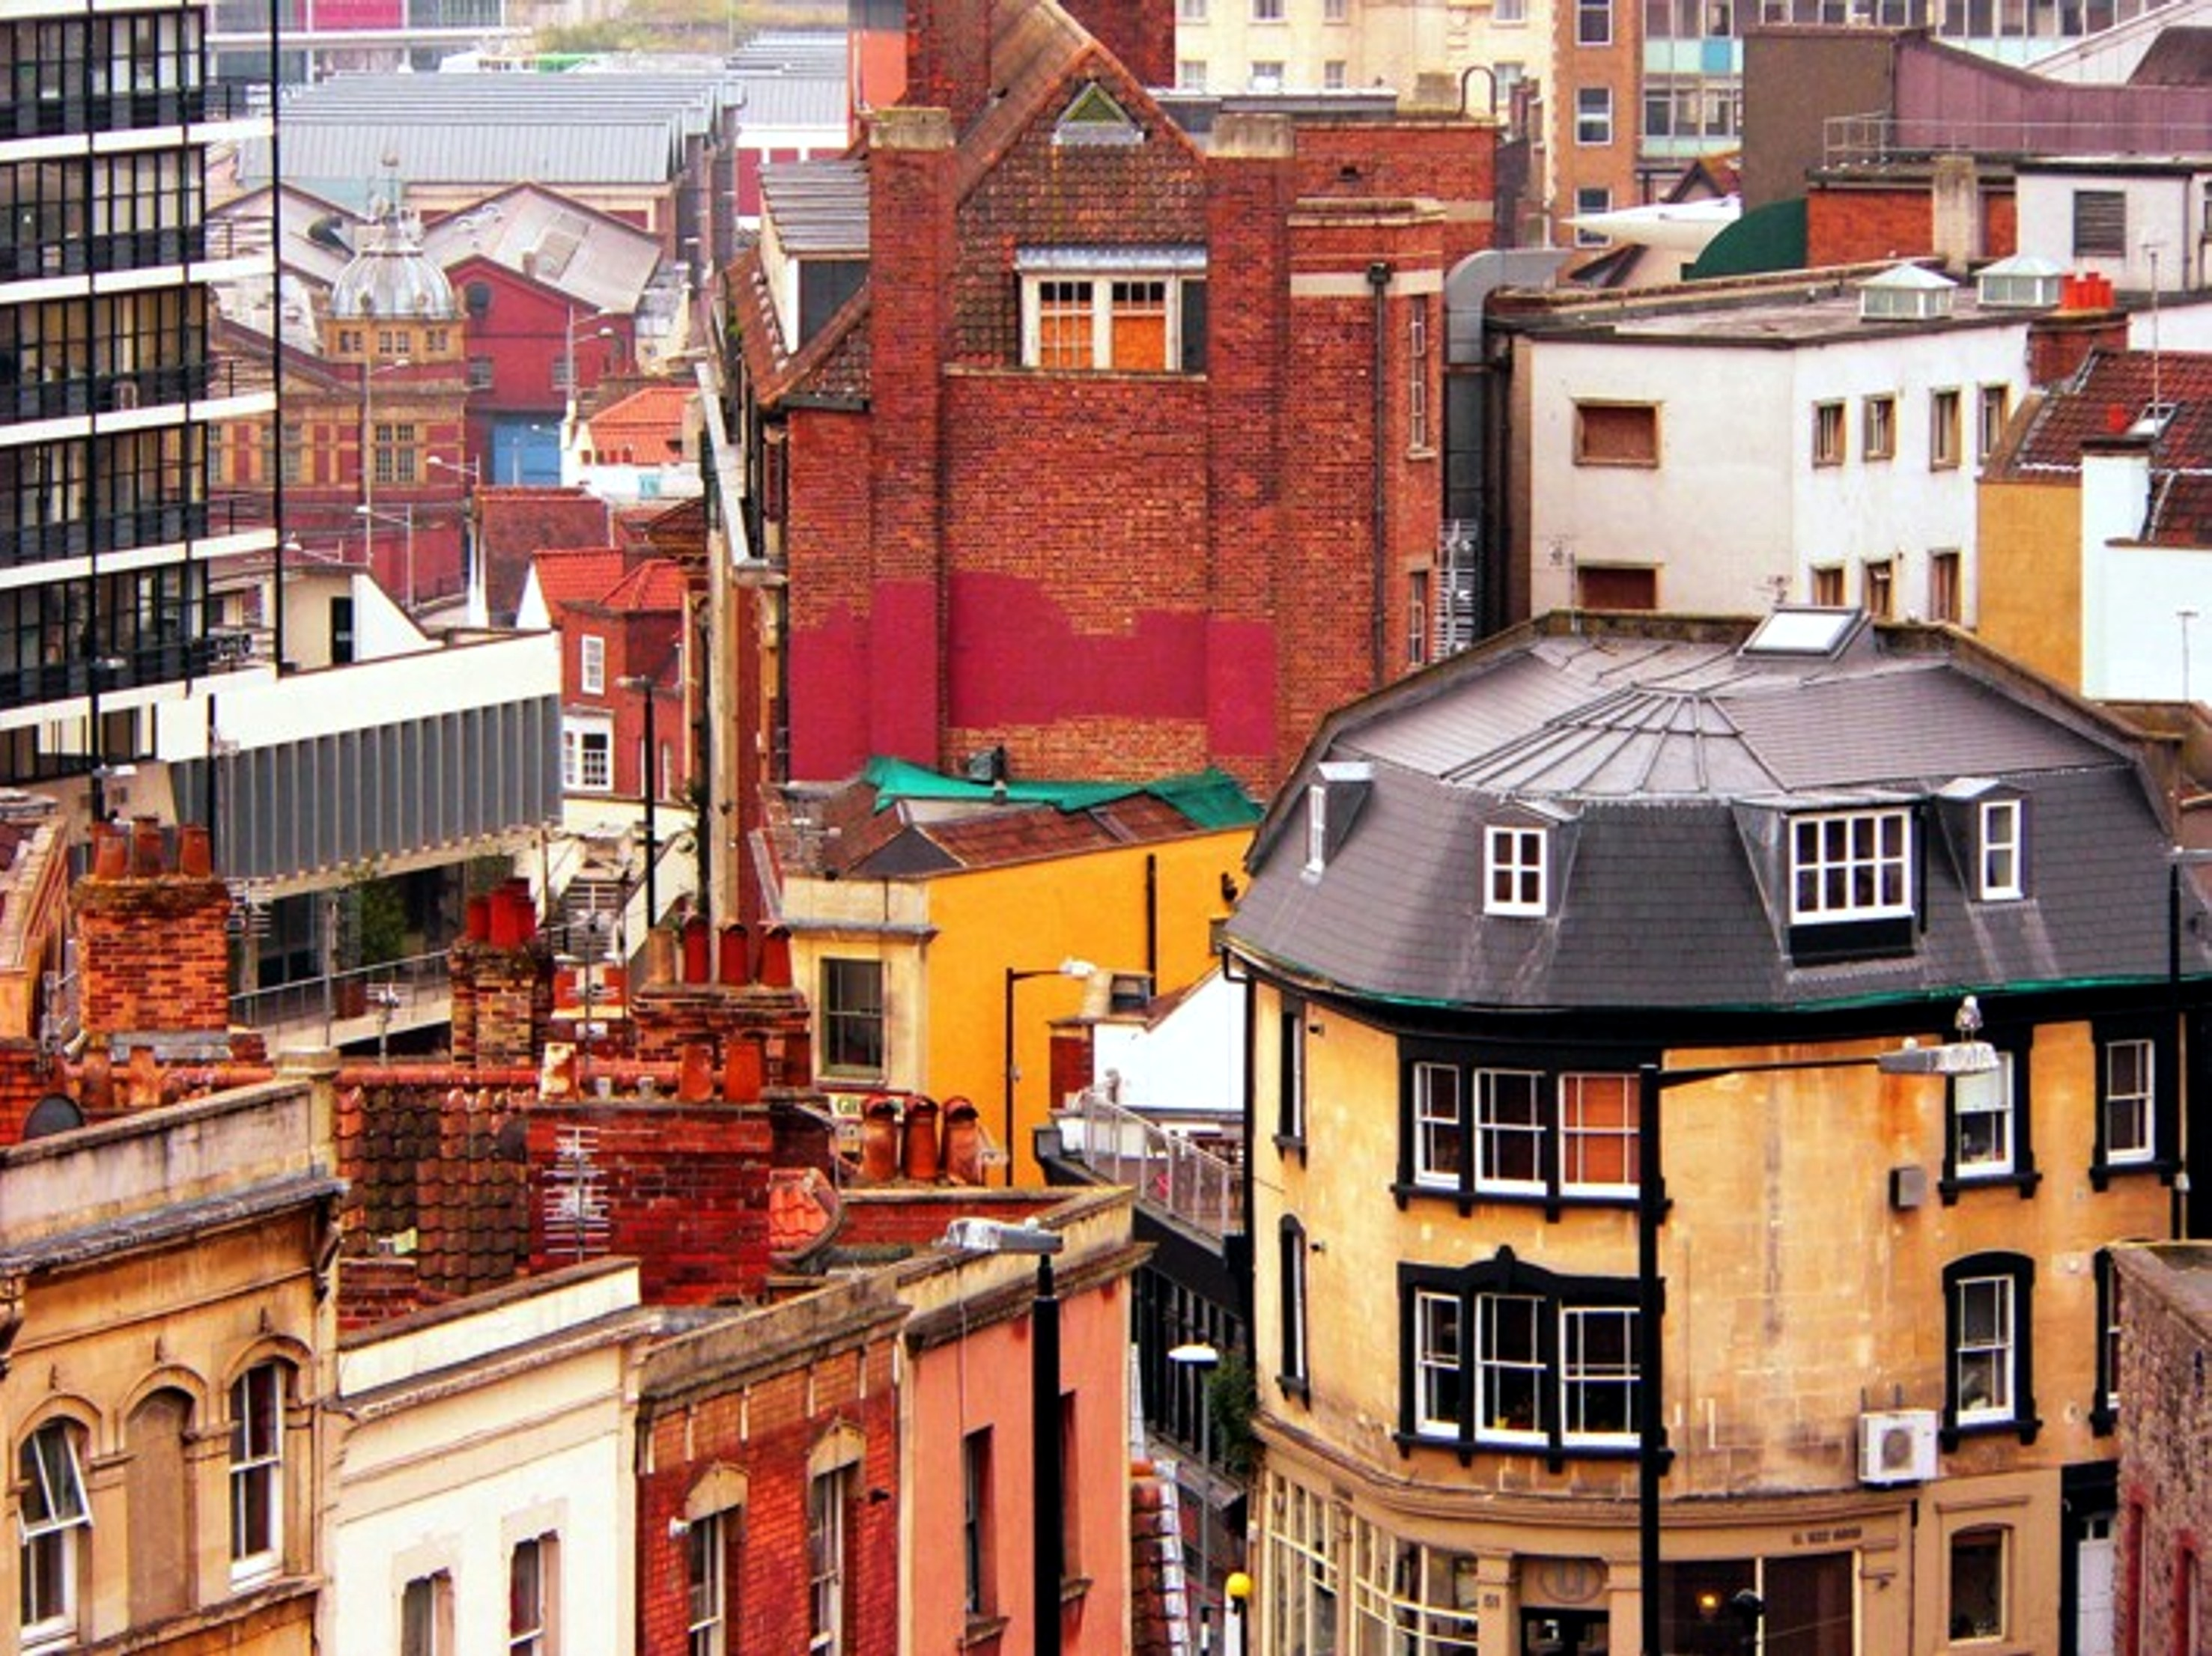 Bristol roofscape